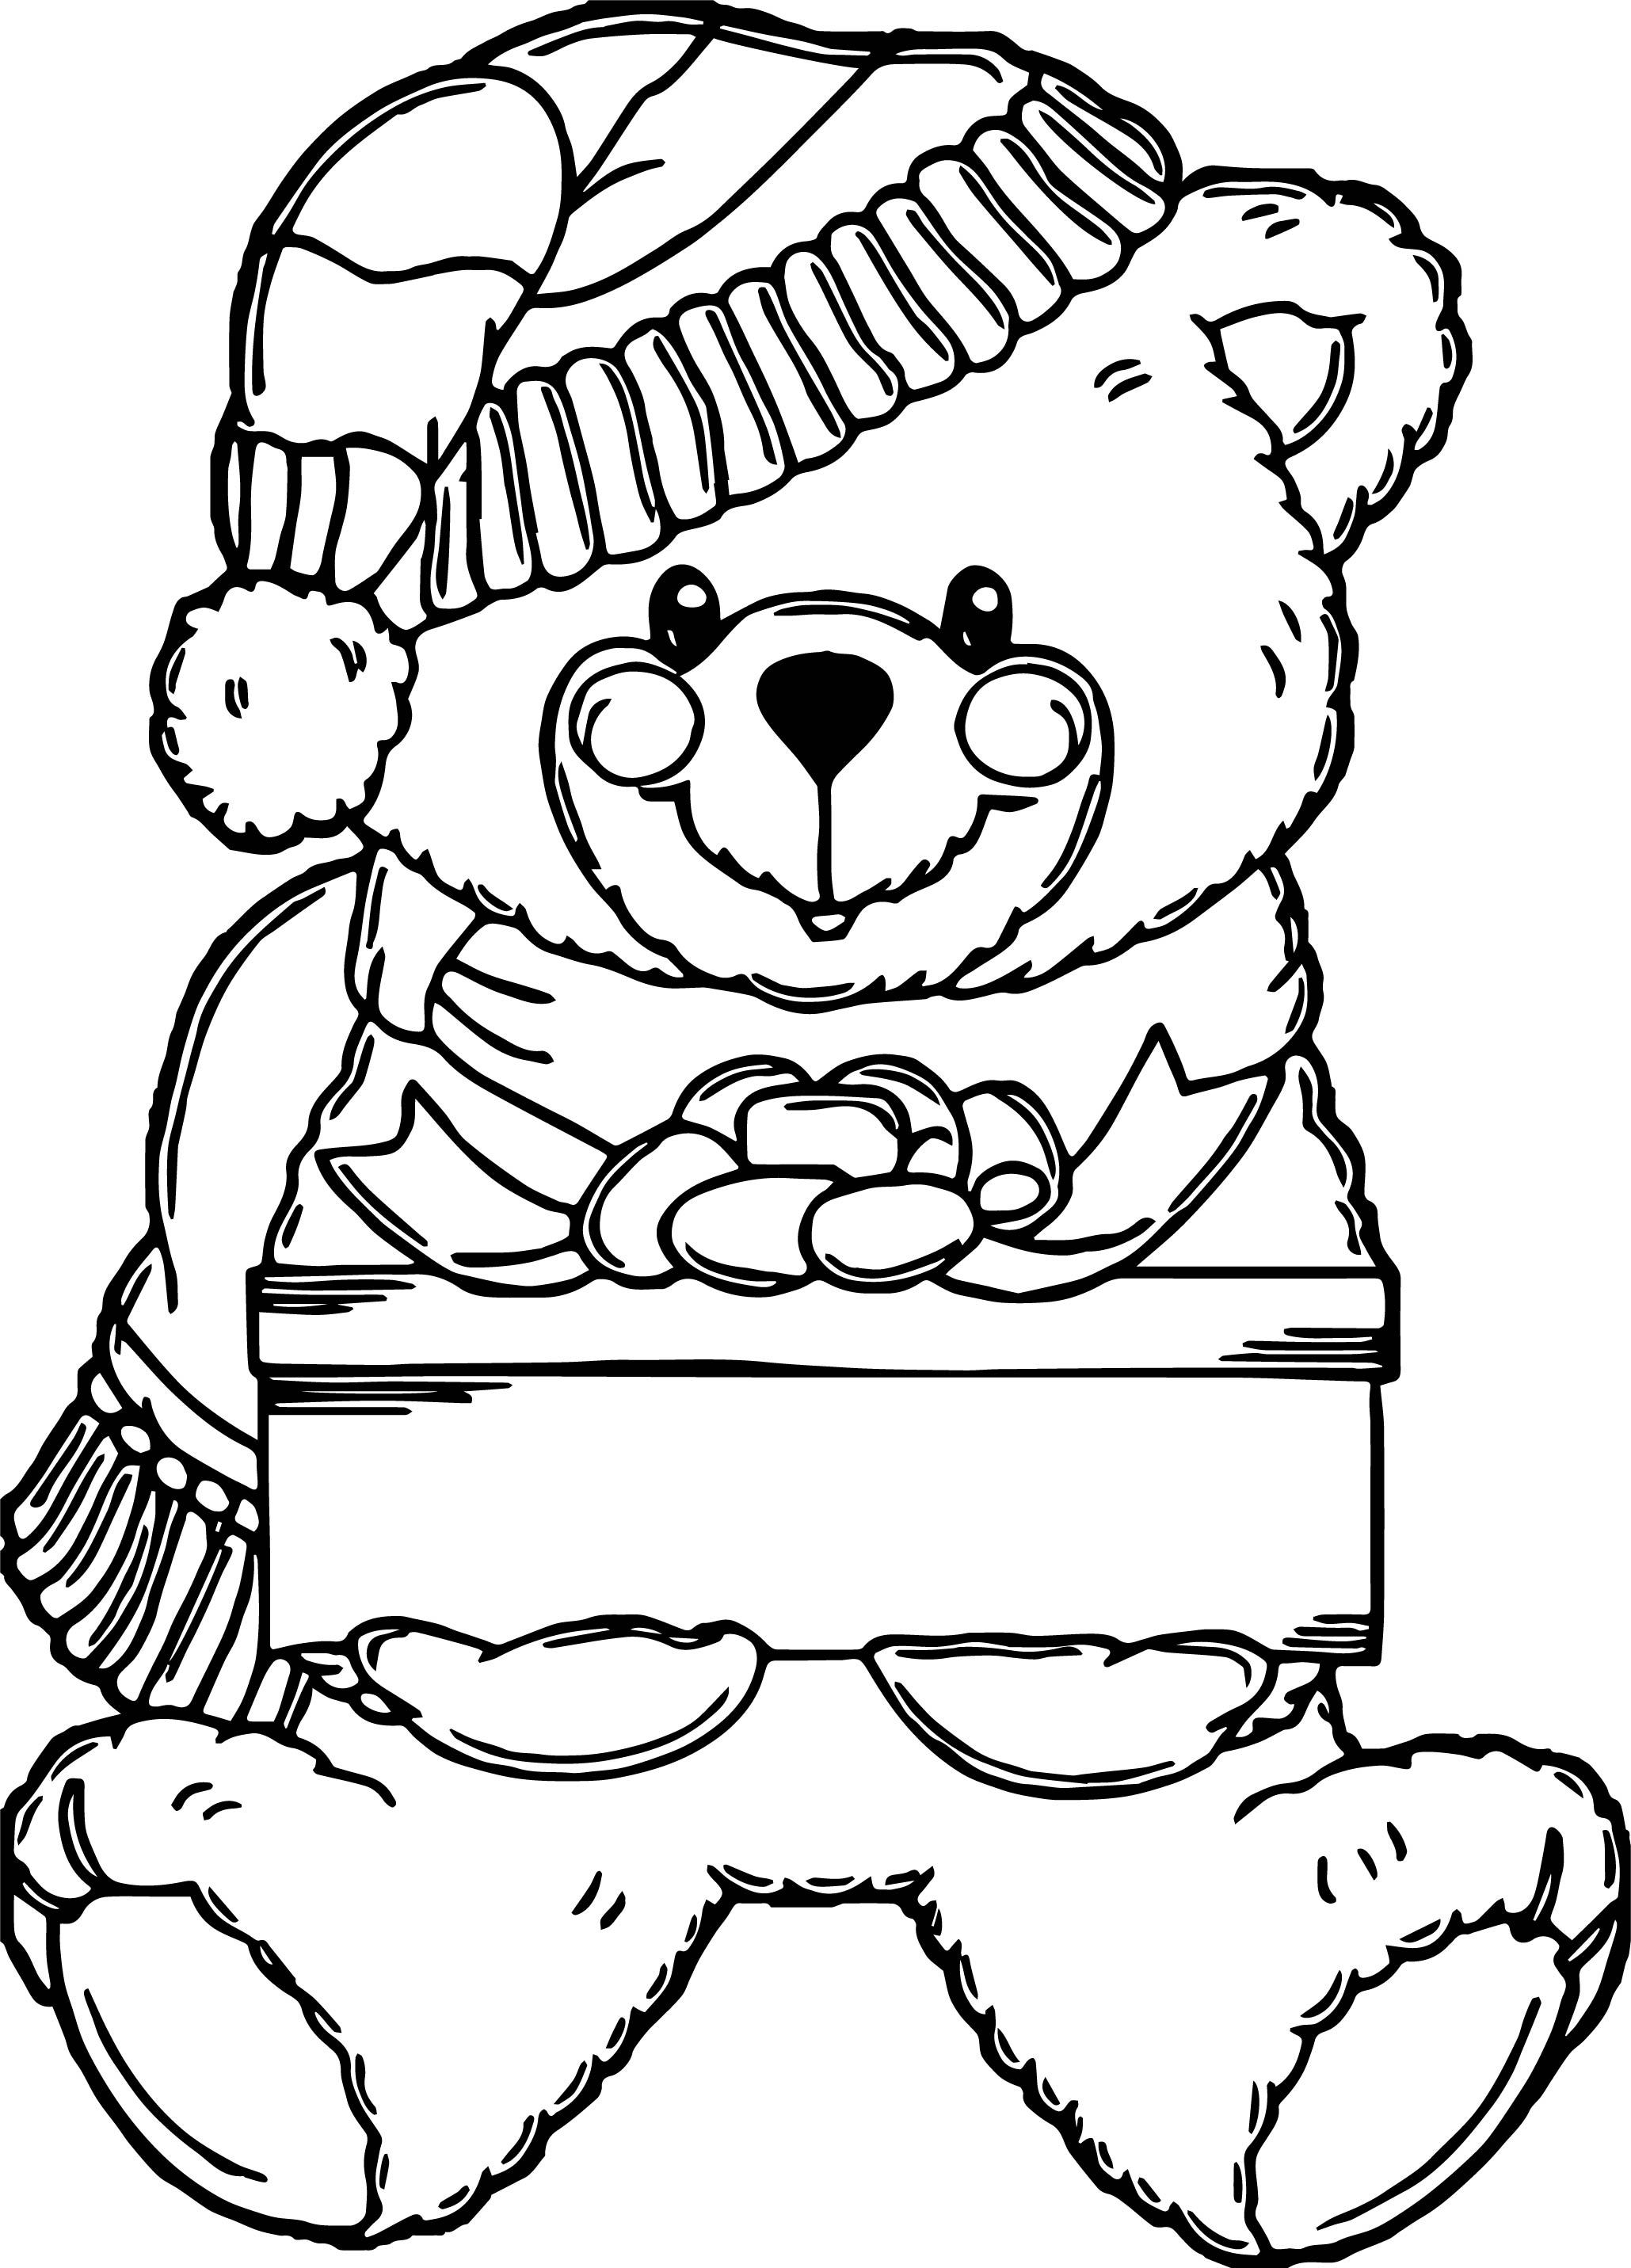 snow bears coloring pages - photo#23